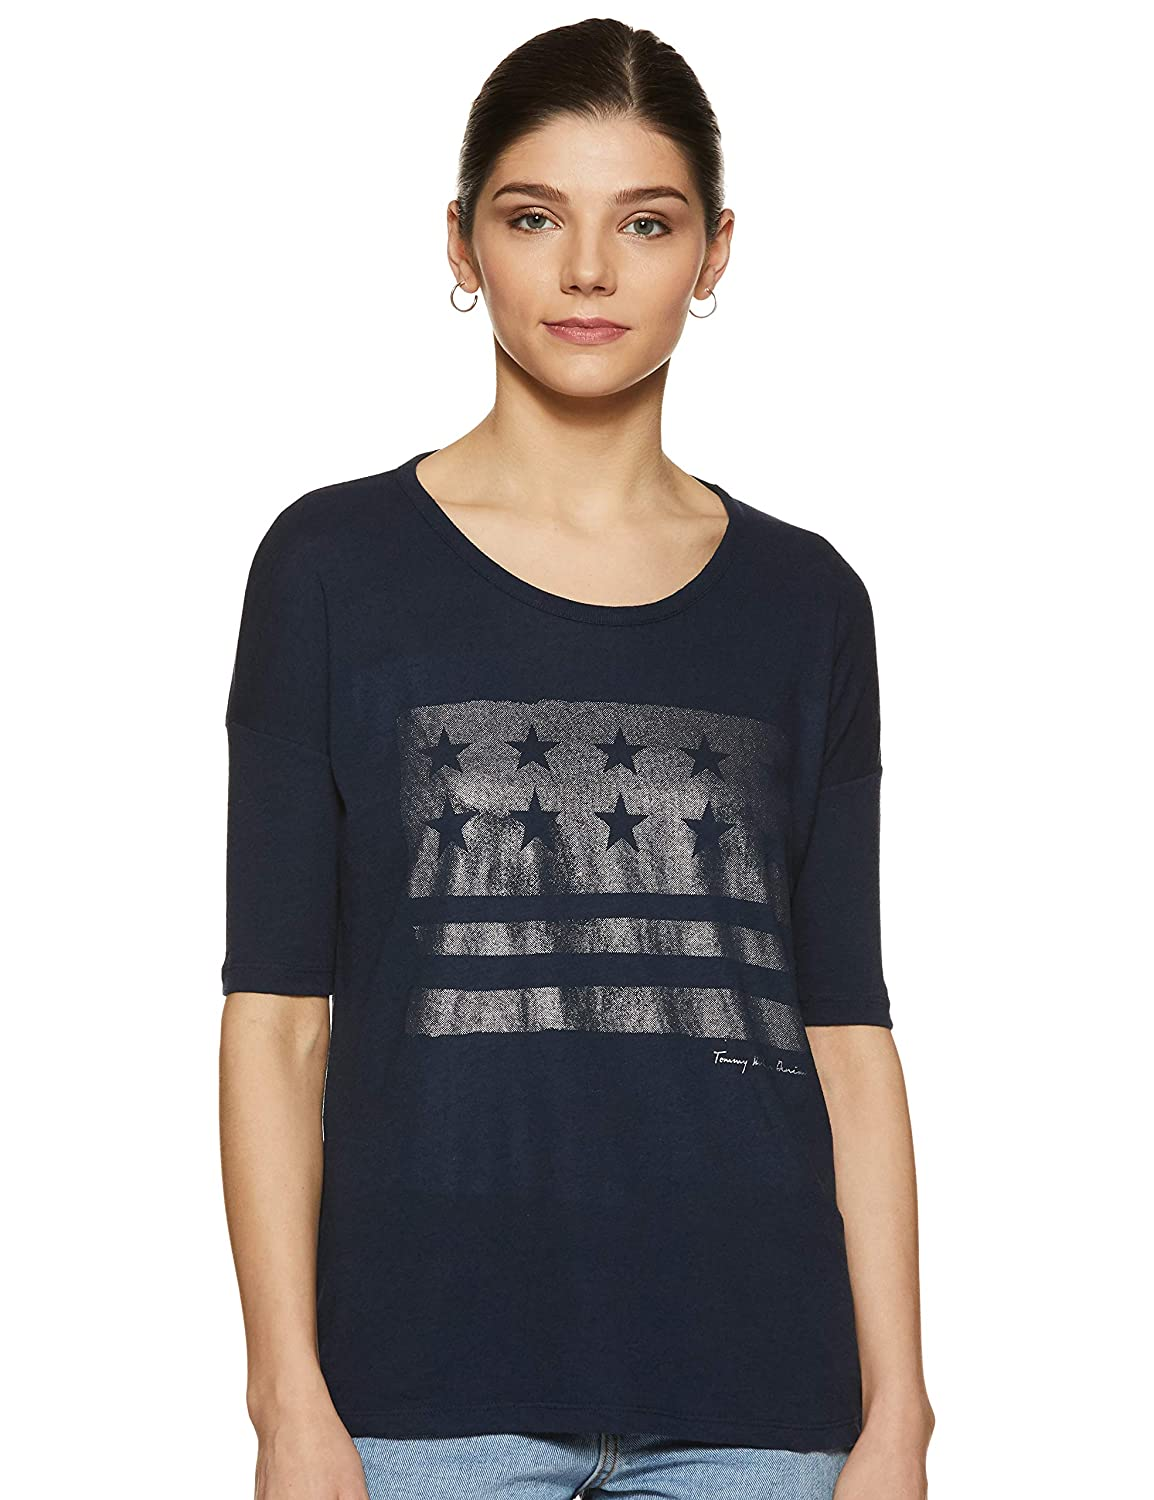 03c18dc4 Tommy Hilfiger Women's Plain T-Shirt: Amazon.in: Clothing & Accessories